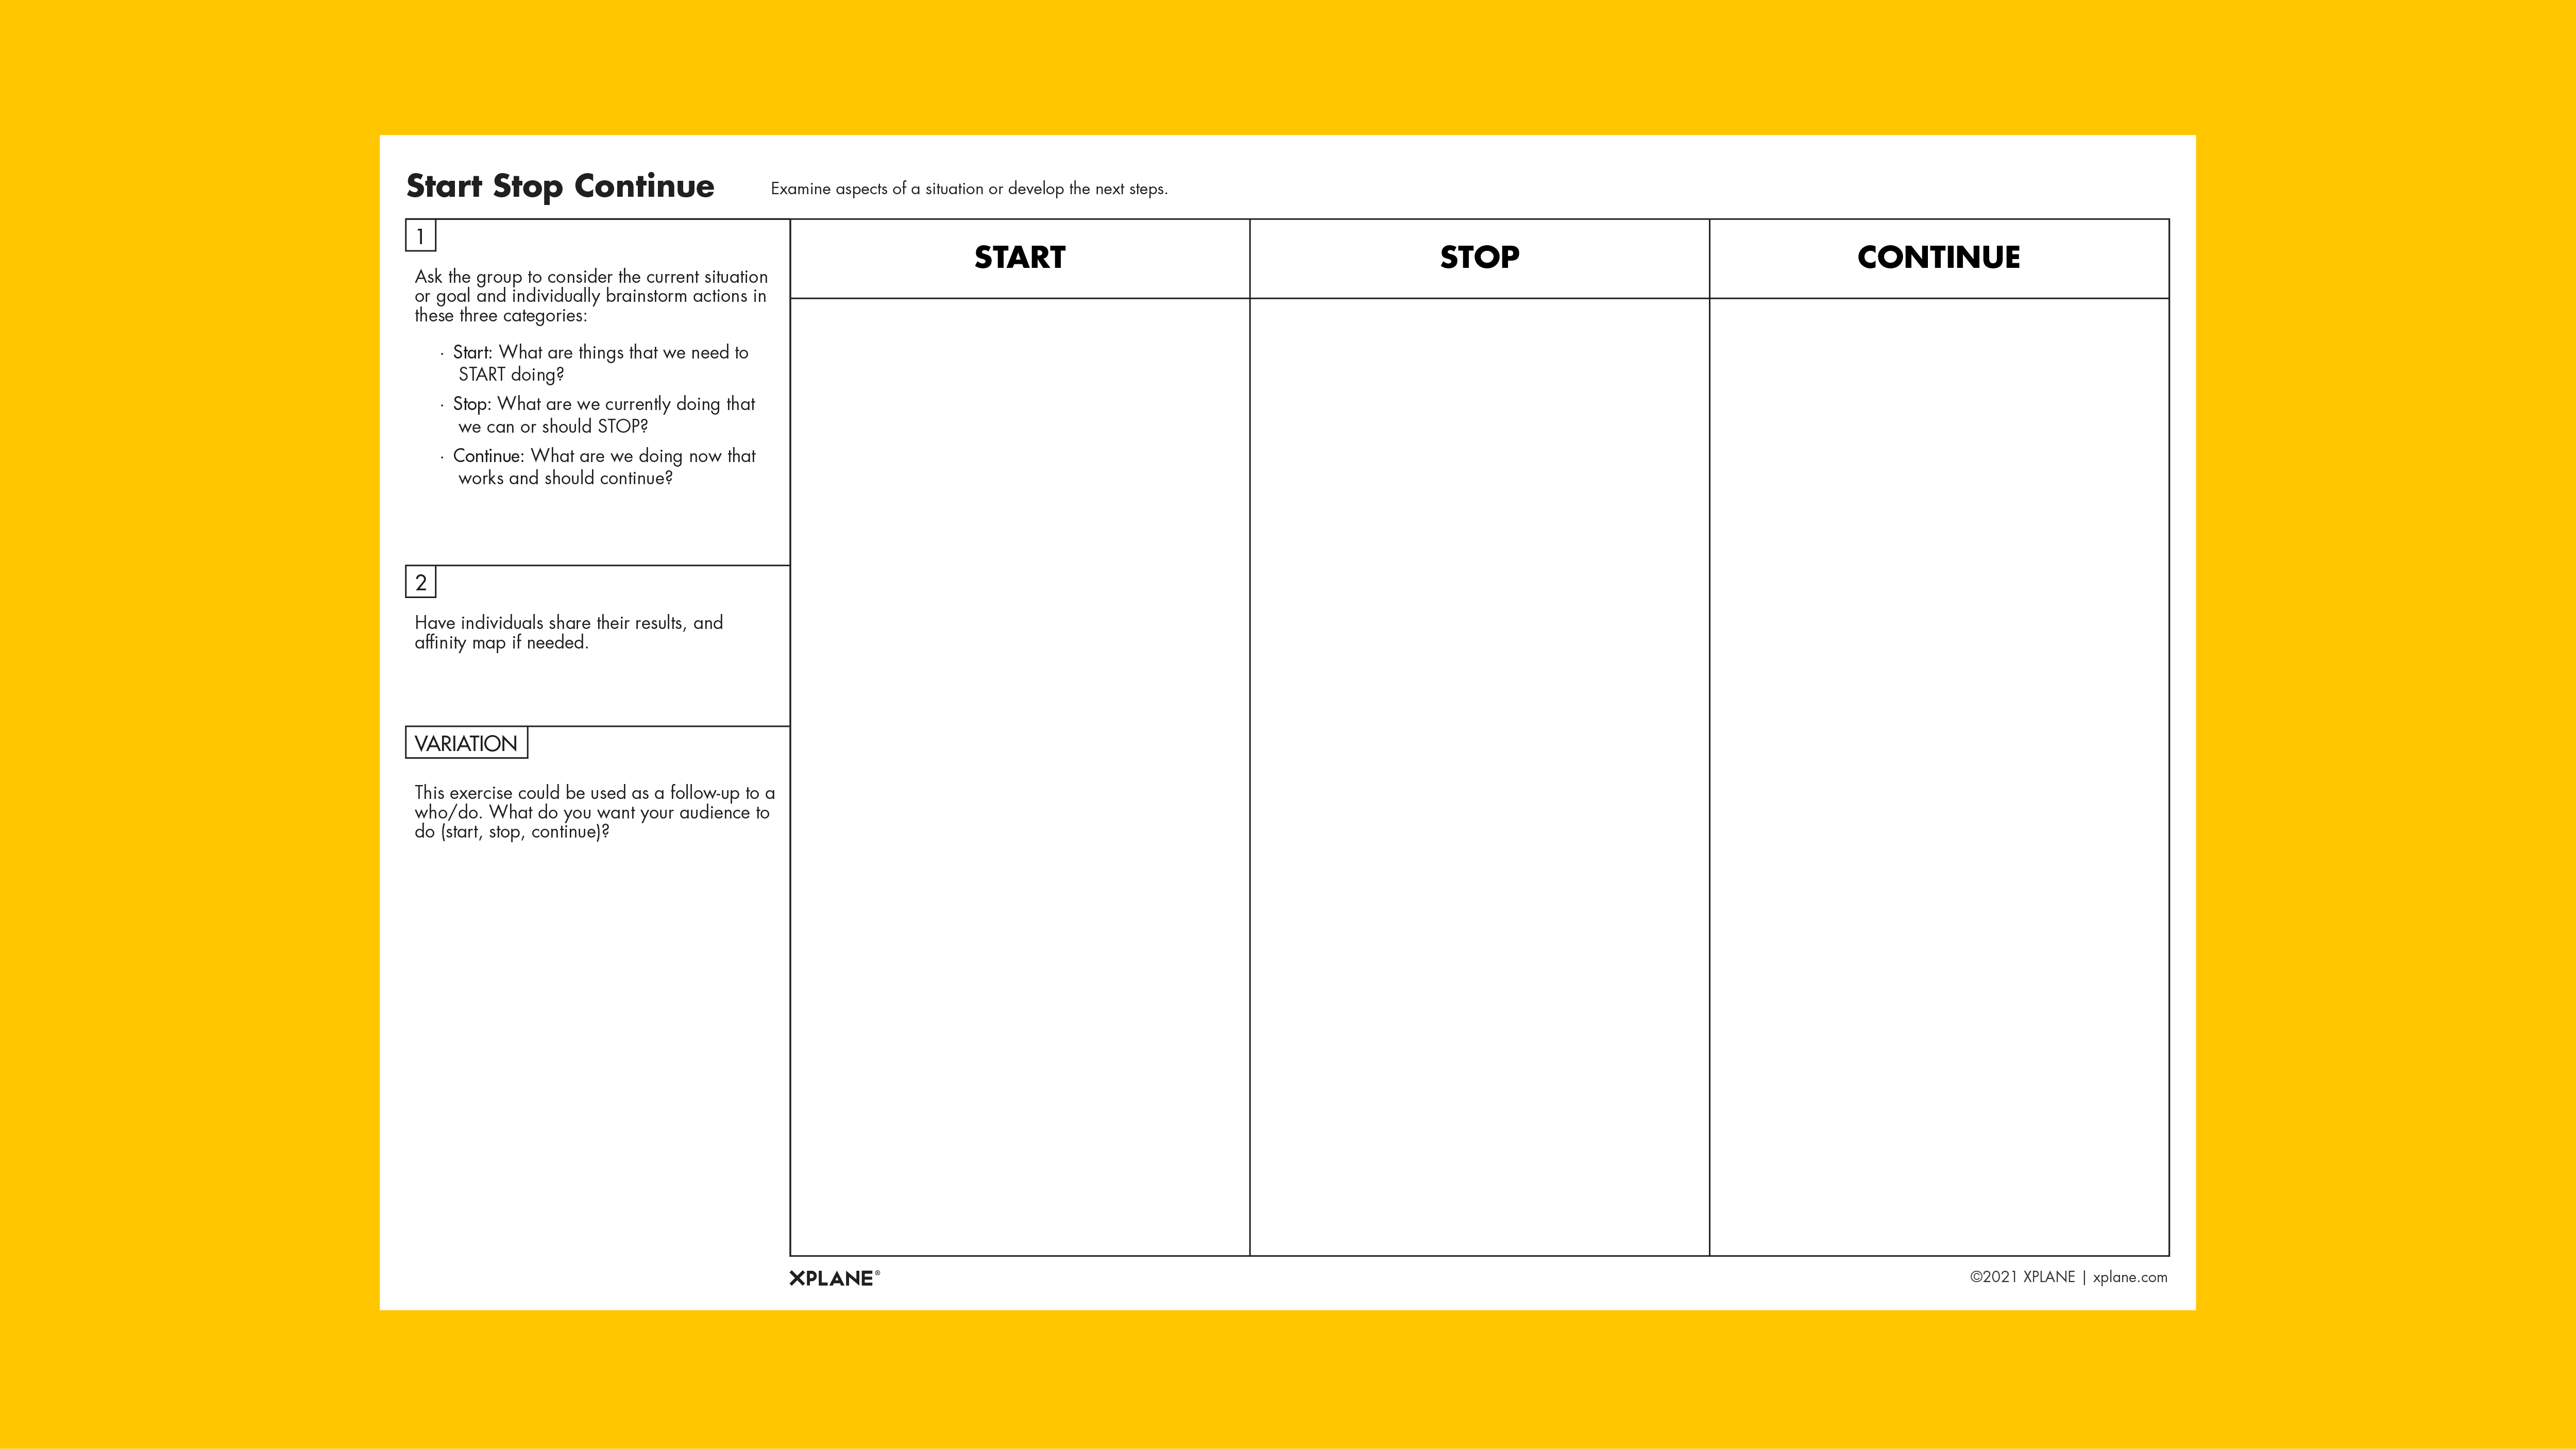 Start Stop Continue worksheet against yellow background